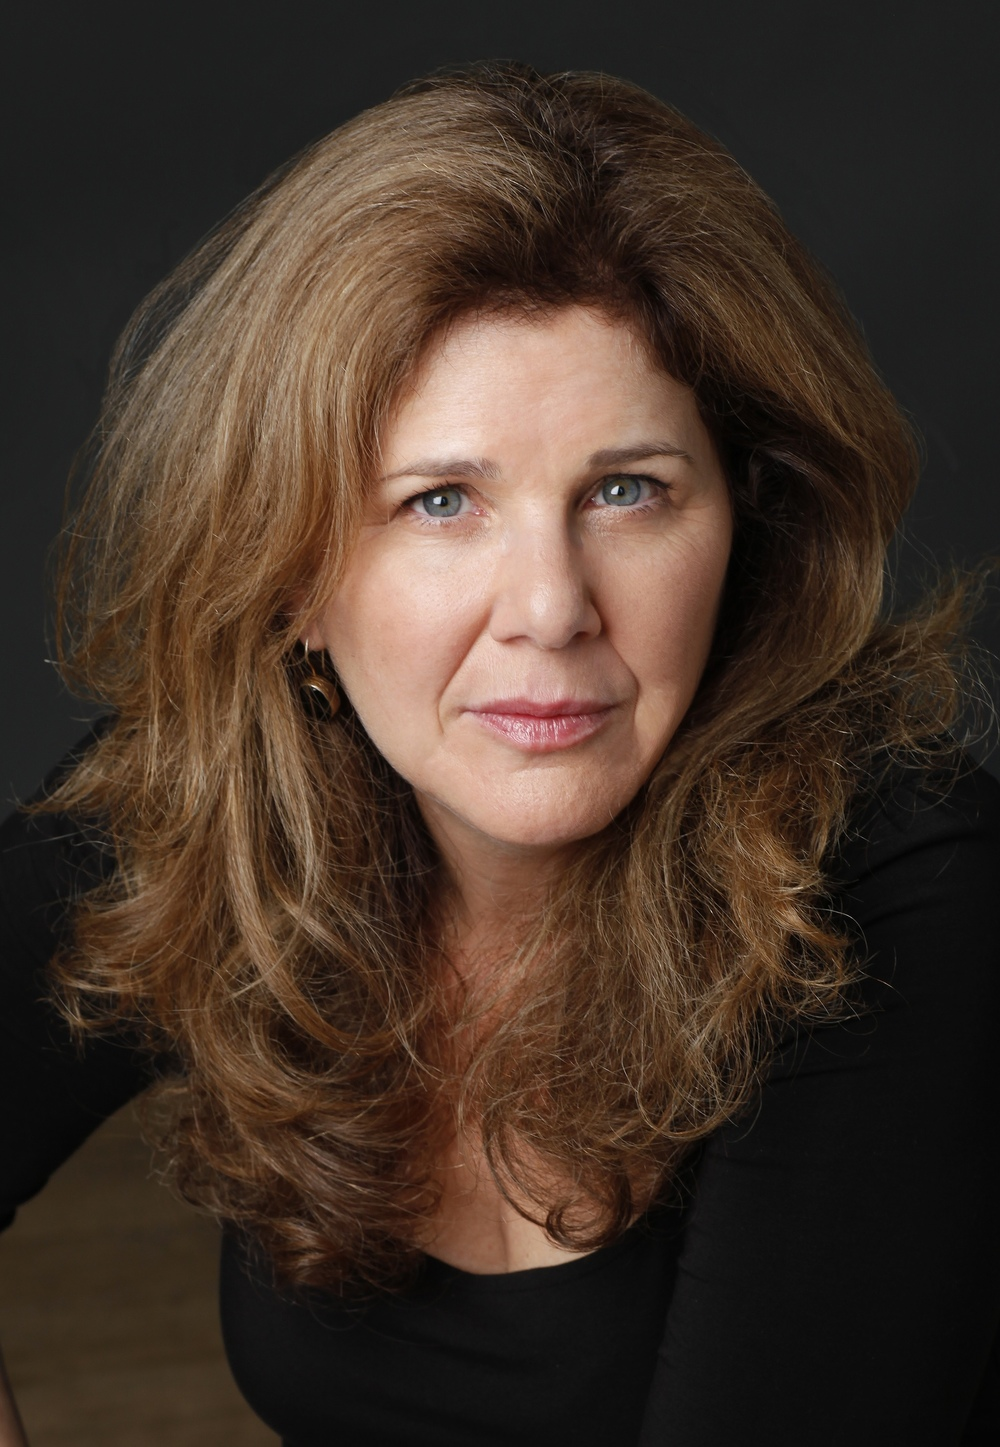 Ric Esther Bienstock - head shot.jpg